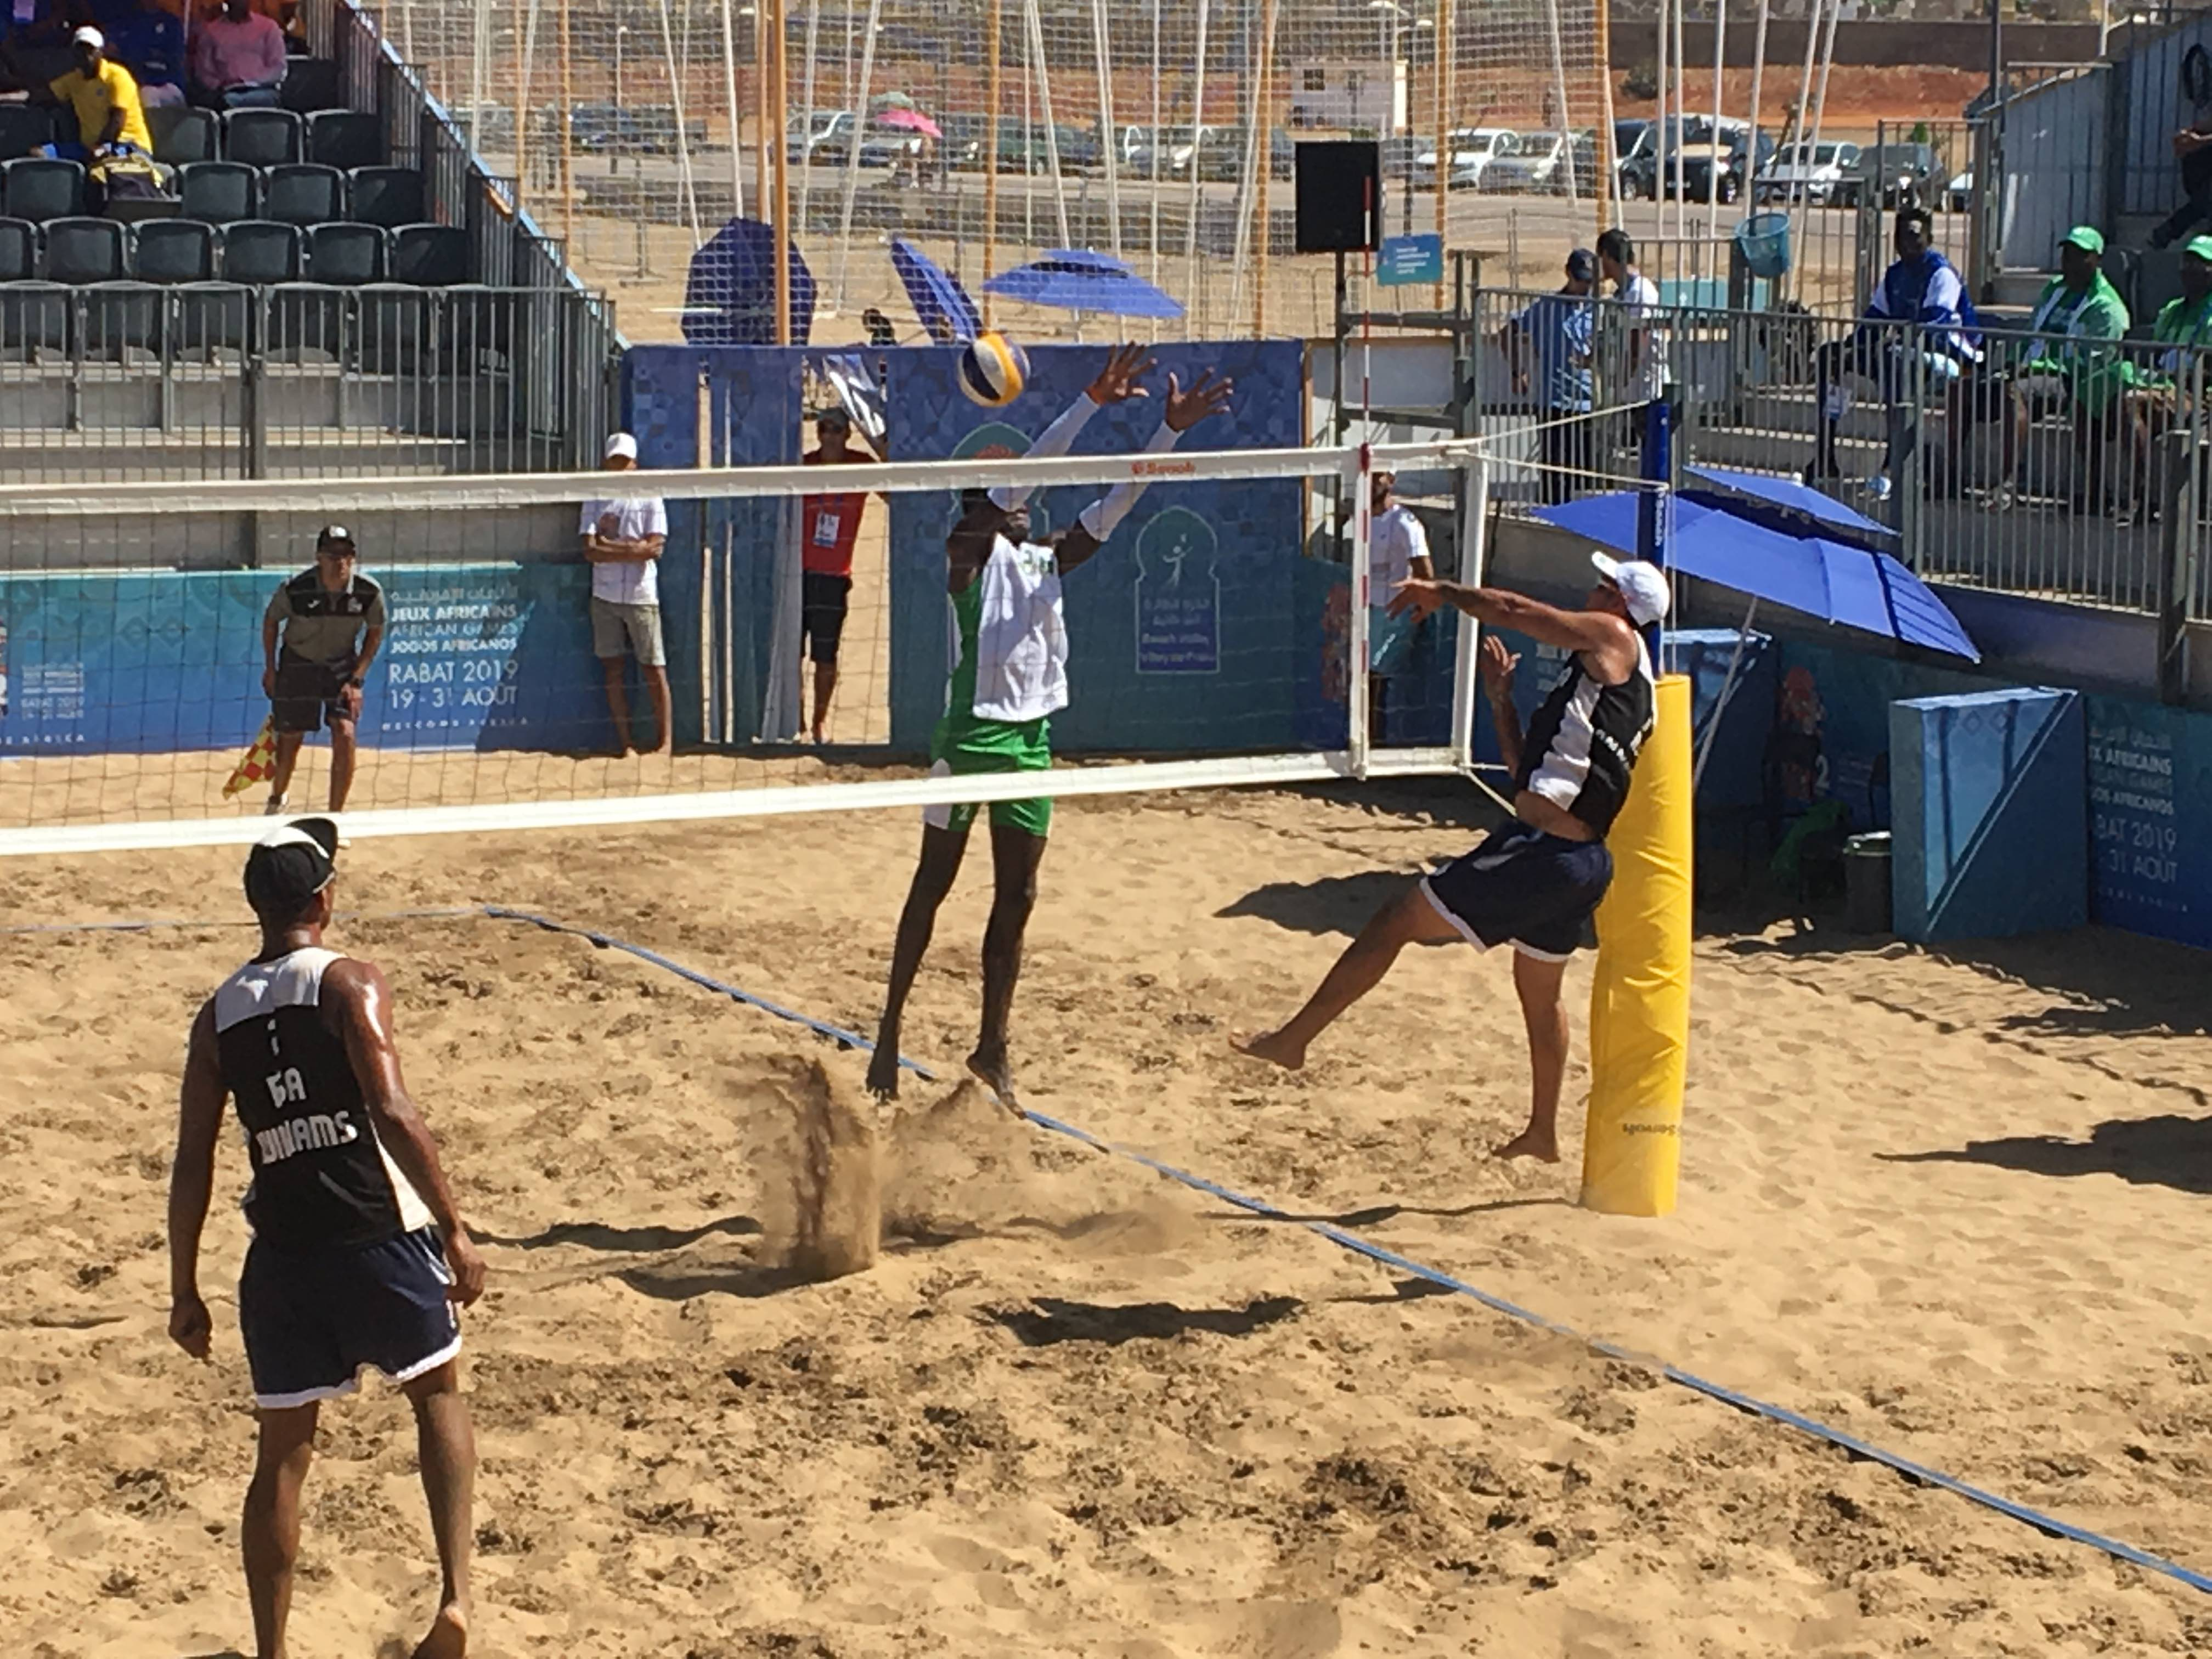 Men's doubles stay unbeaten on the sand